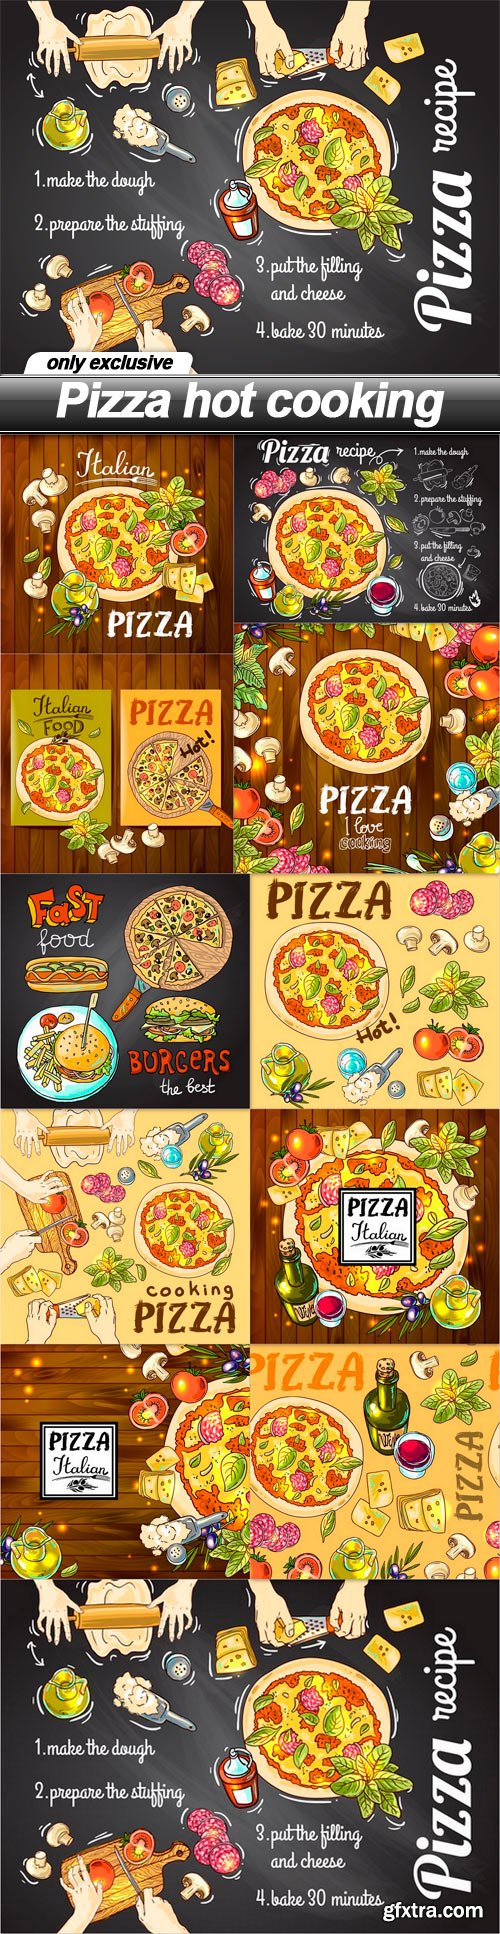 Pizza hot cooking - 11 EPS